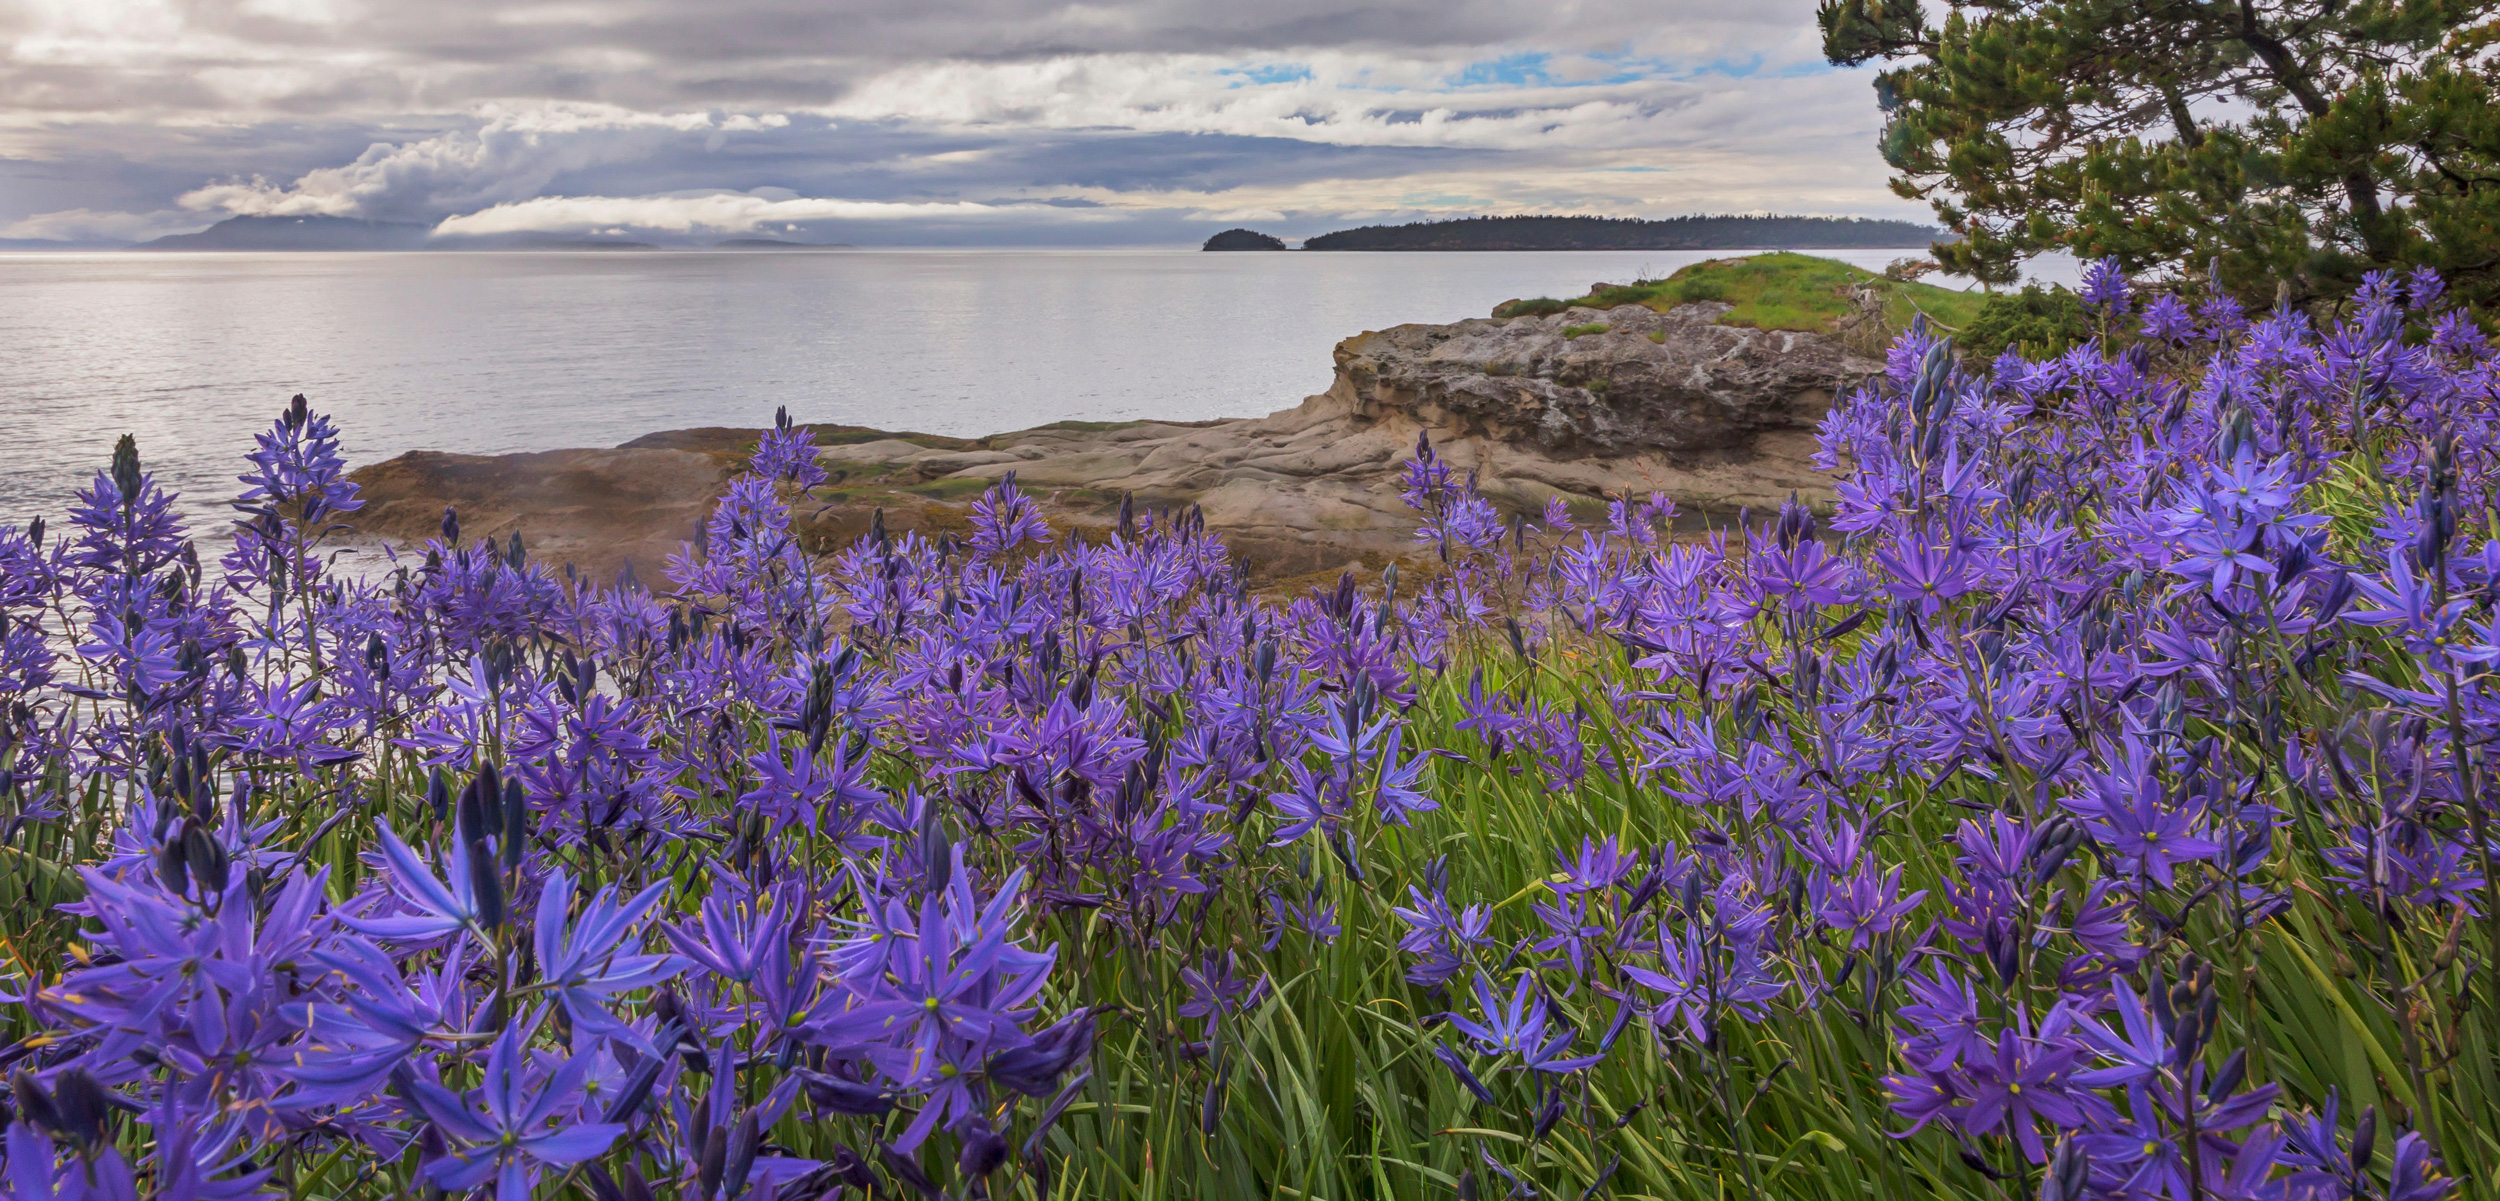 Camas blossoms, Washington, San Juan Islands, Sucia Island